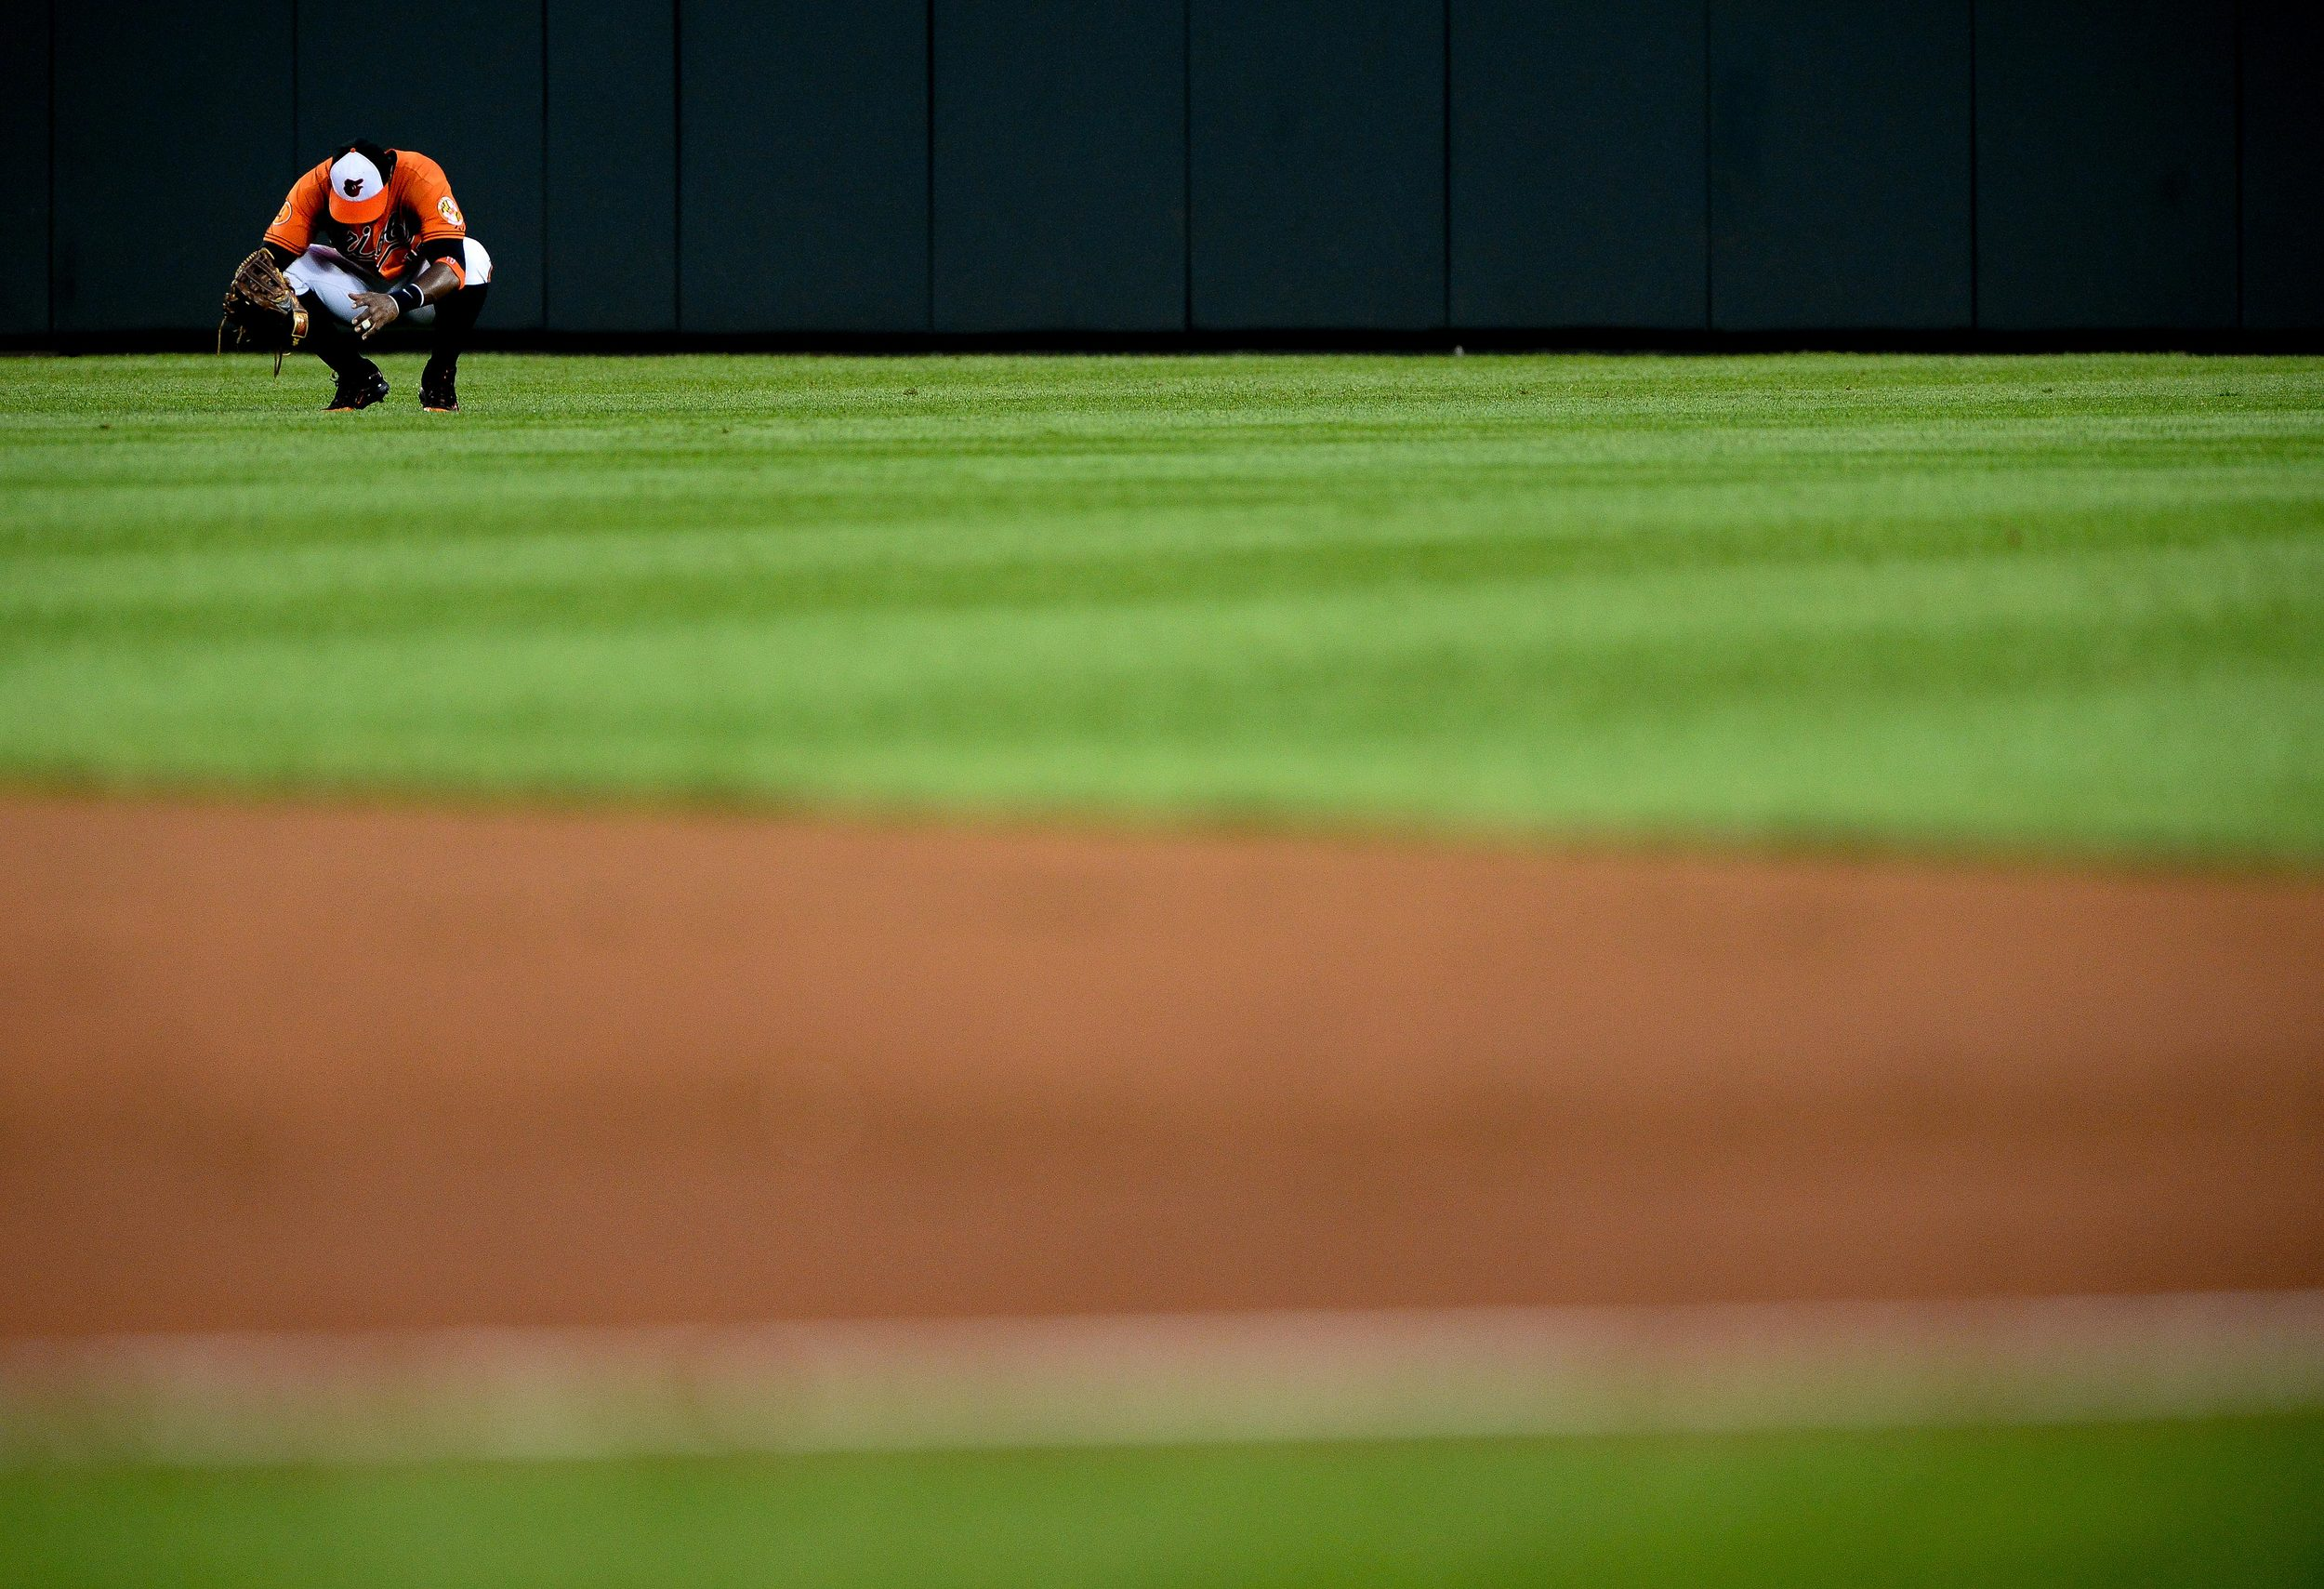 Baltimore Orioles center fielder Adam Jones reacts after missing a catch on July 27, 2013 in Baltimore, Md.